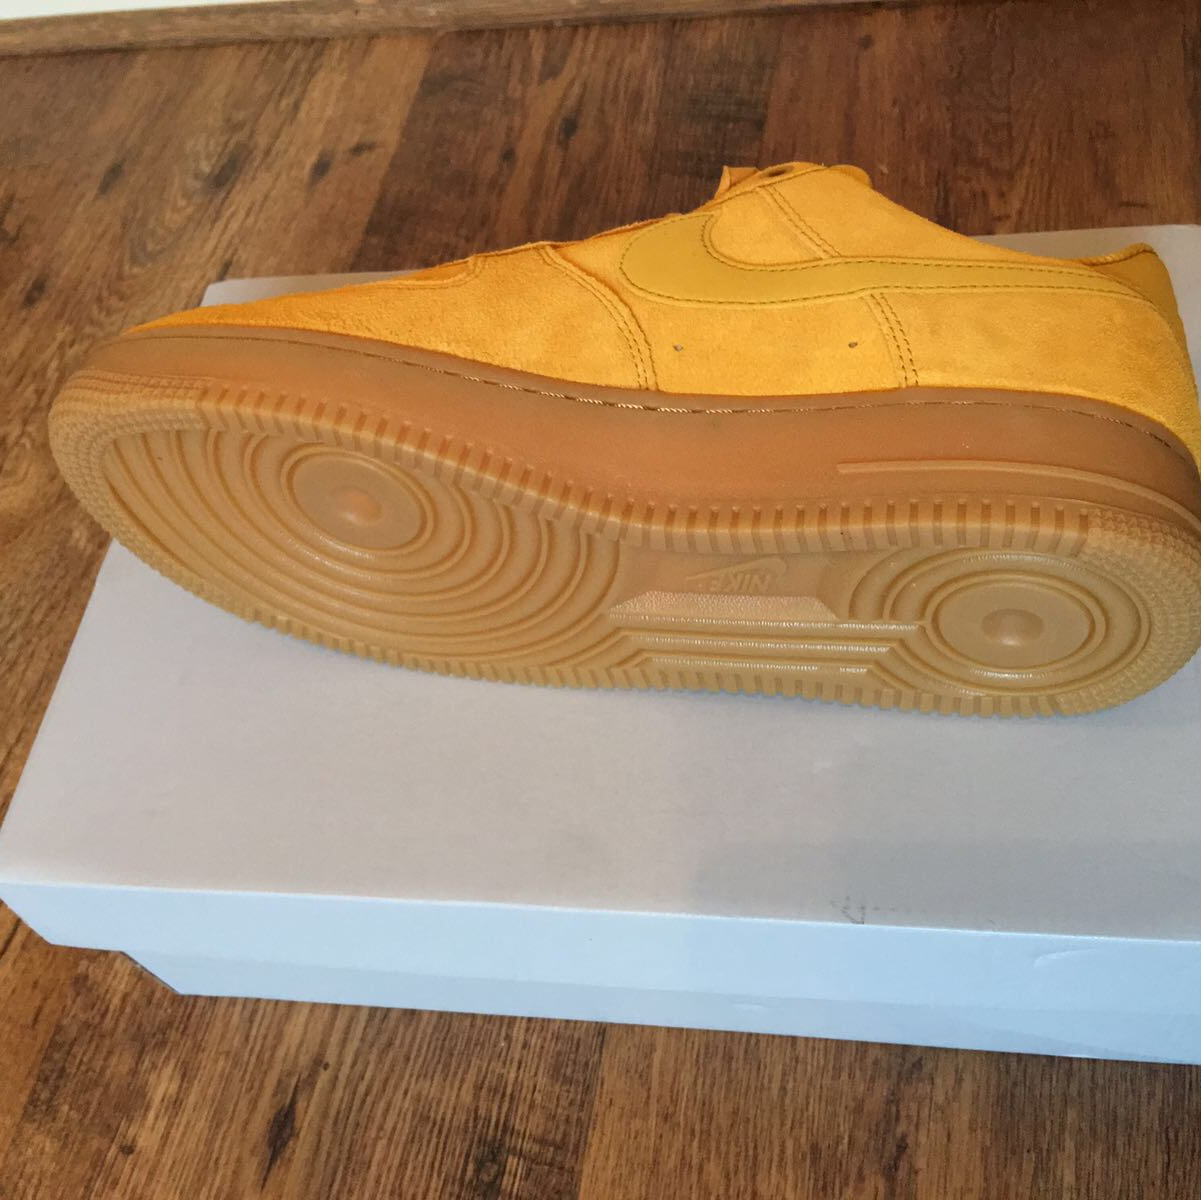 c04e744a55355 Nike Air Force 1 low /Mustard yellow Suede / Size... - Depop